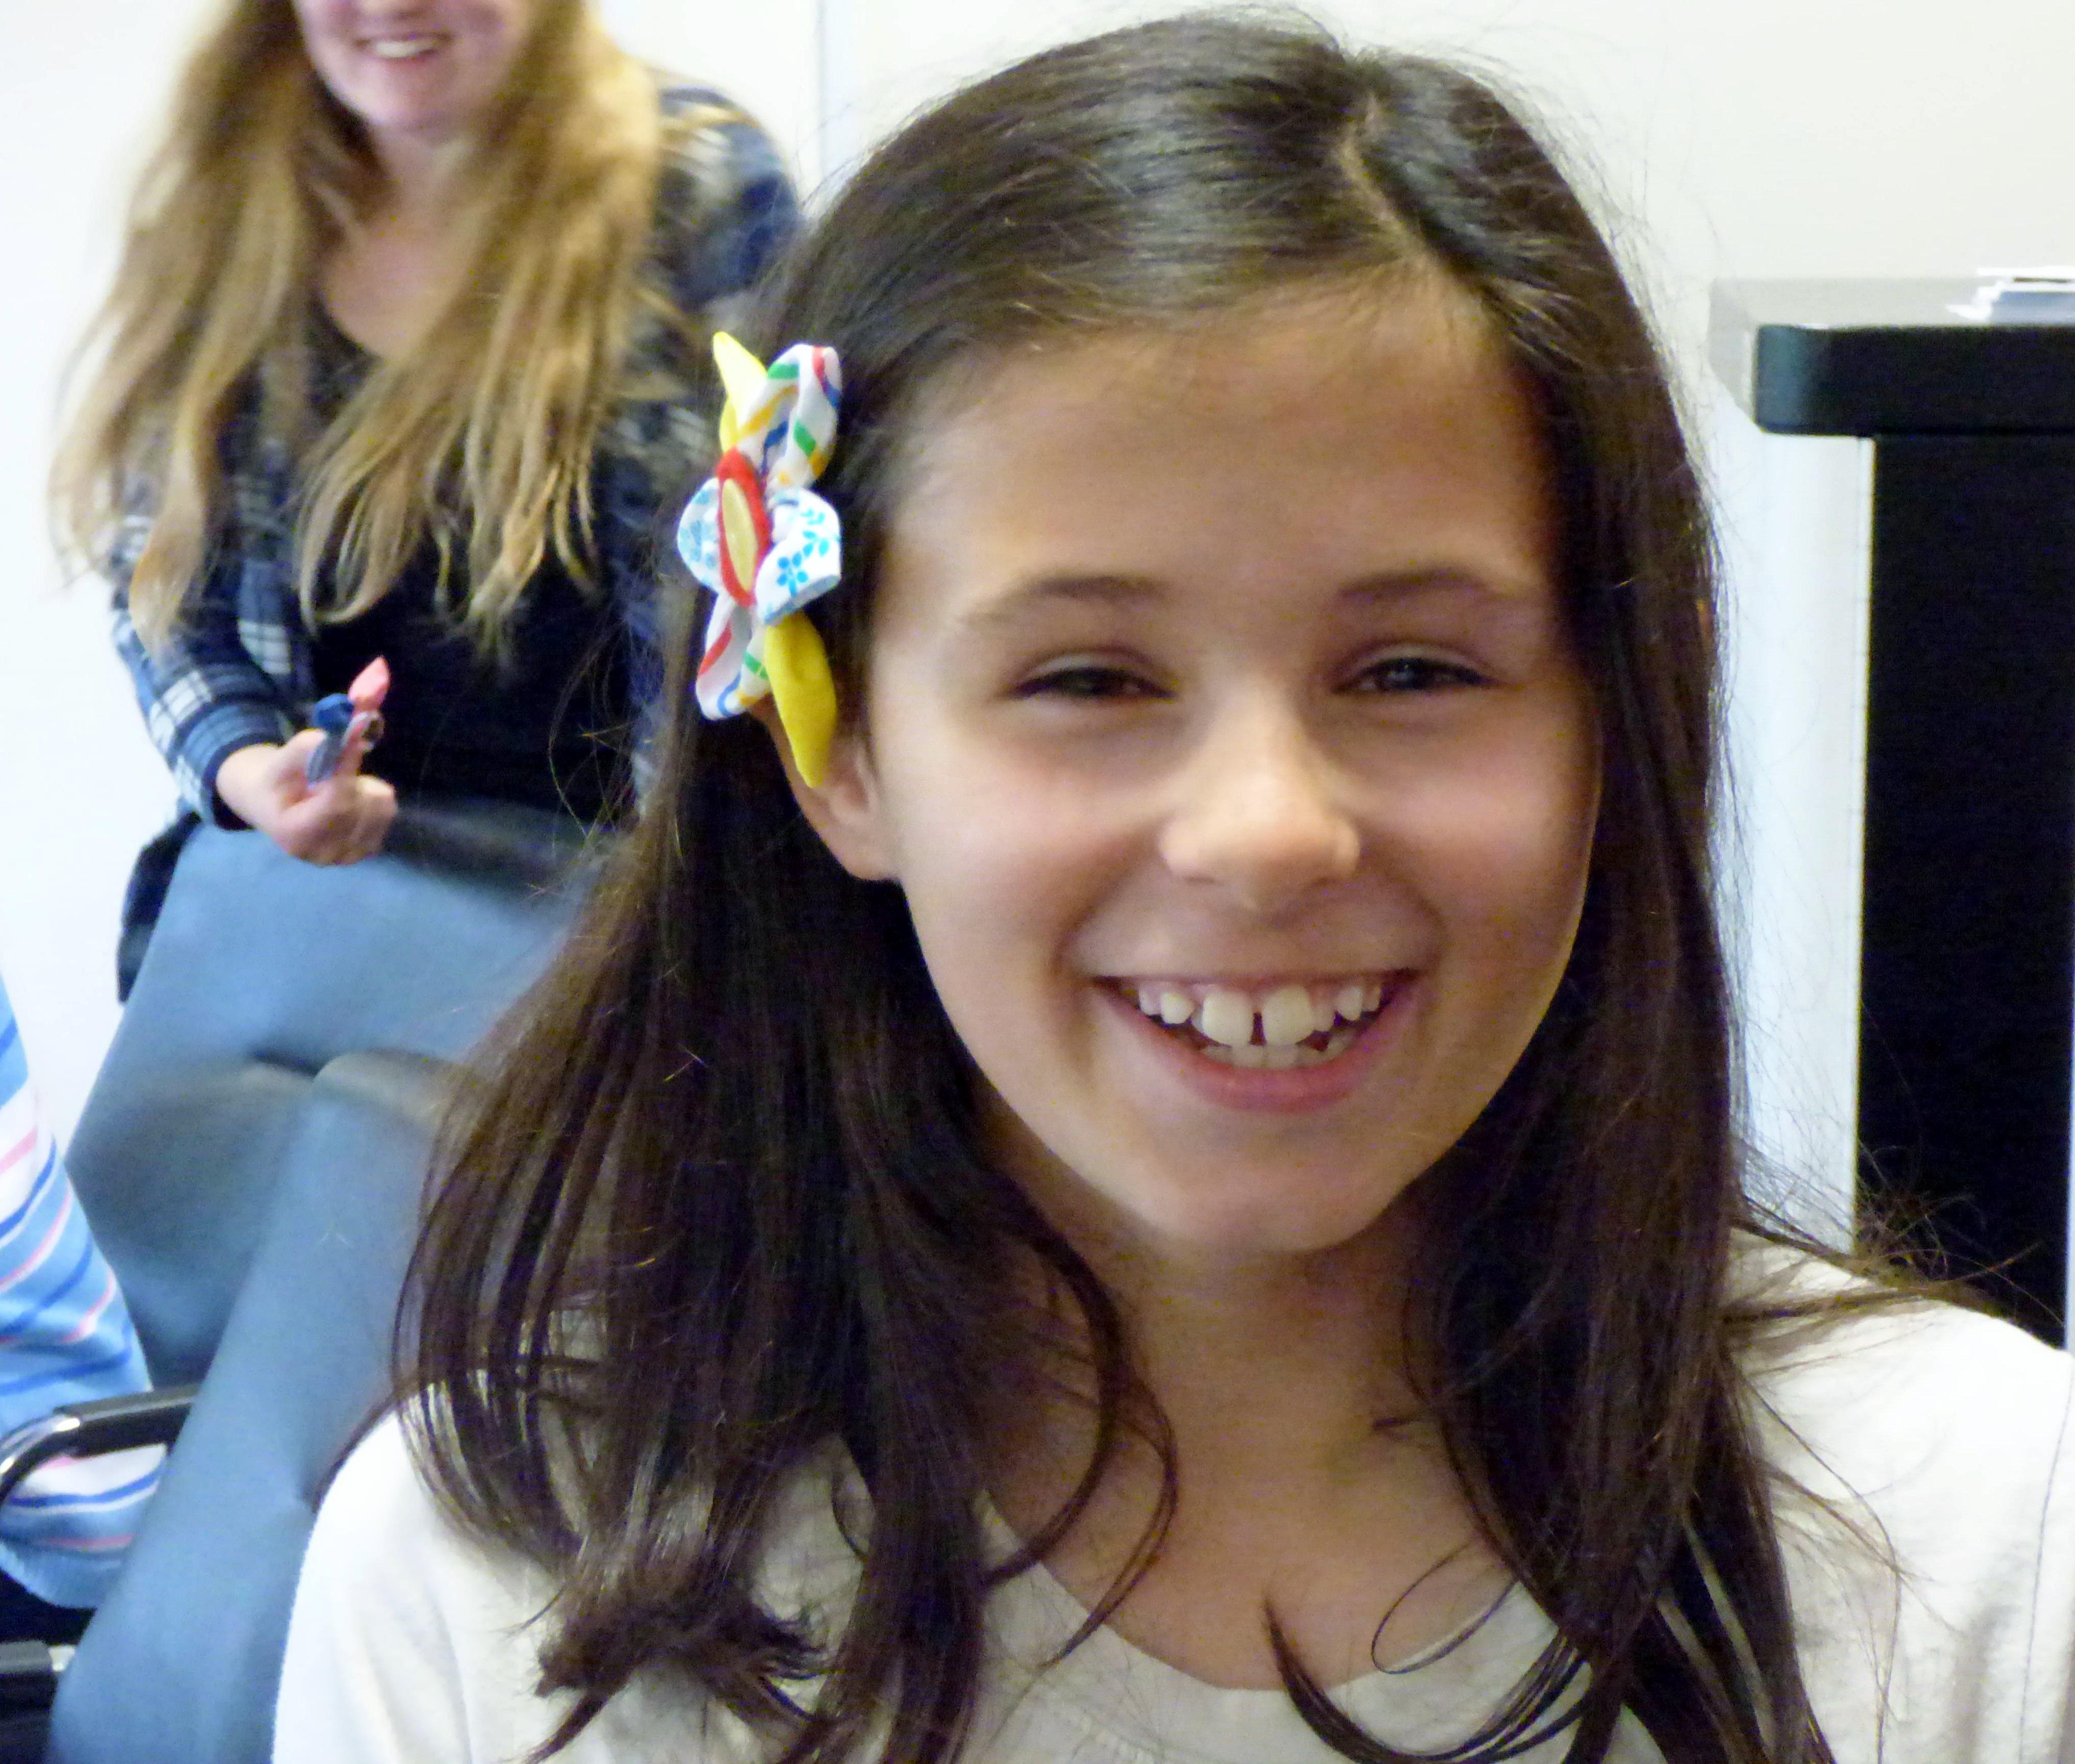 ZOE with her flower hair slide made in YE group 2016